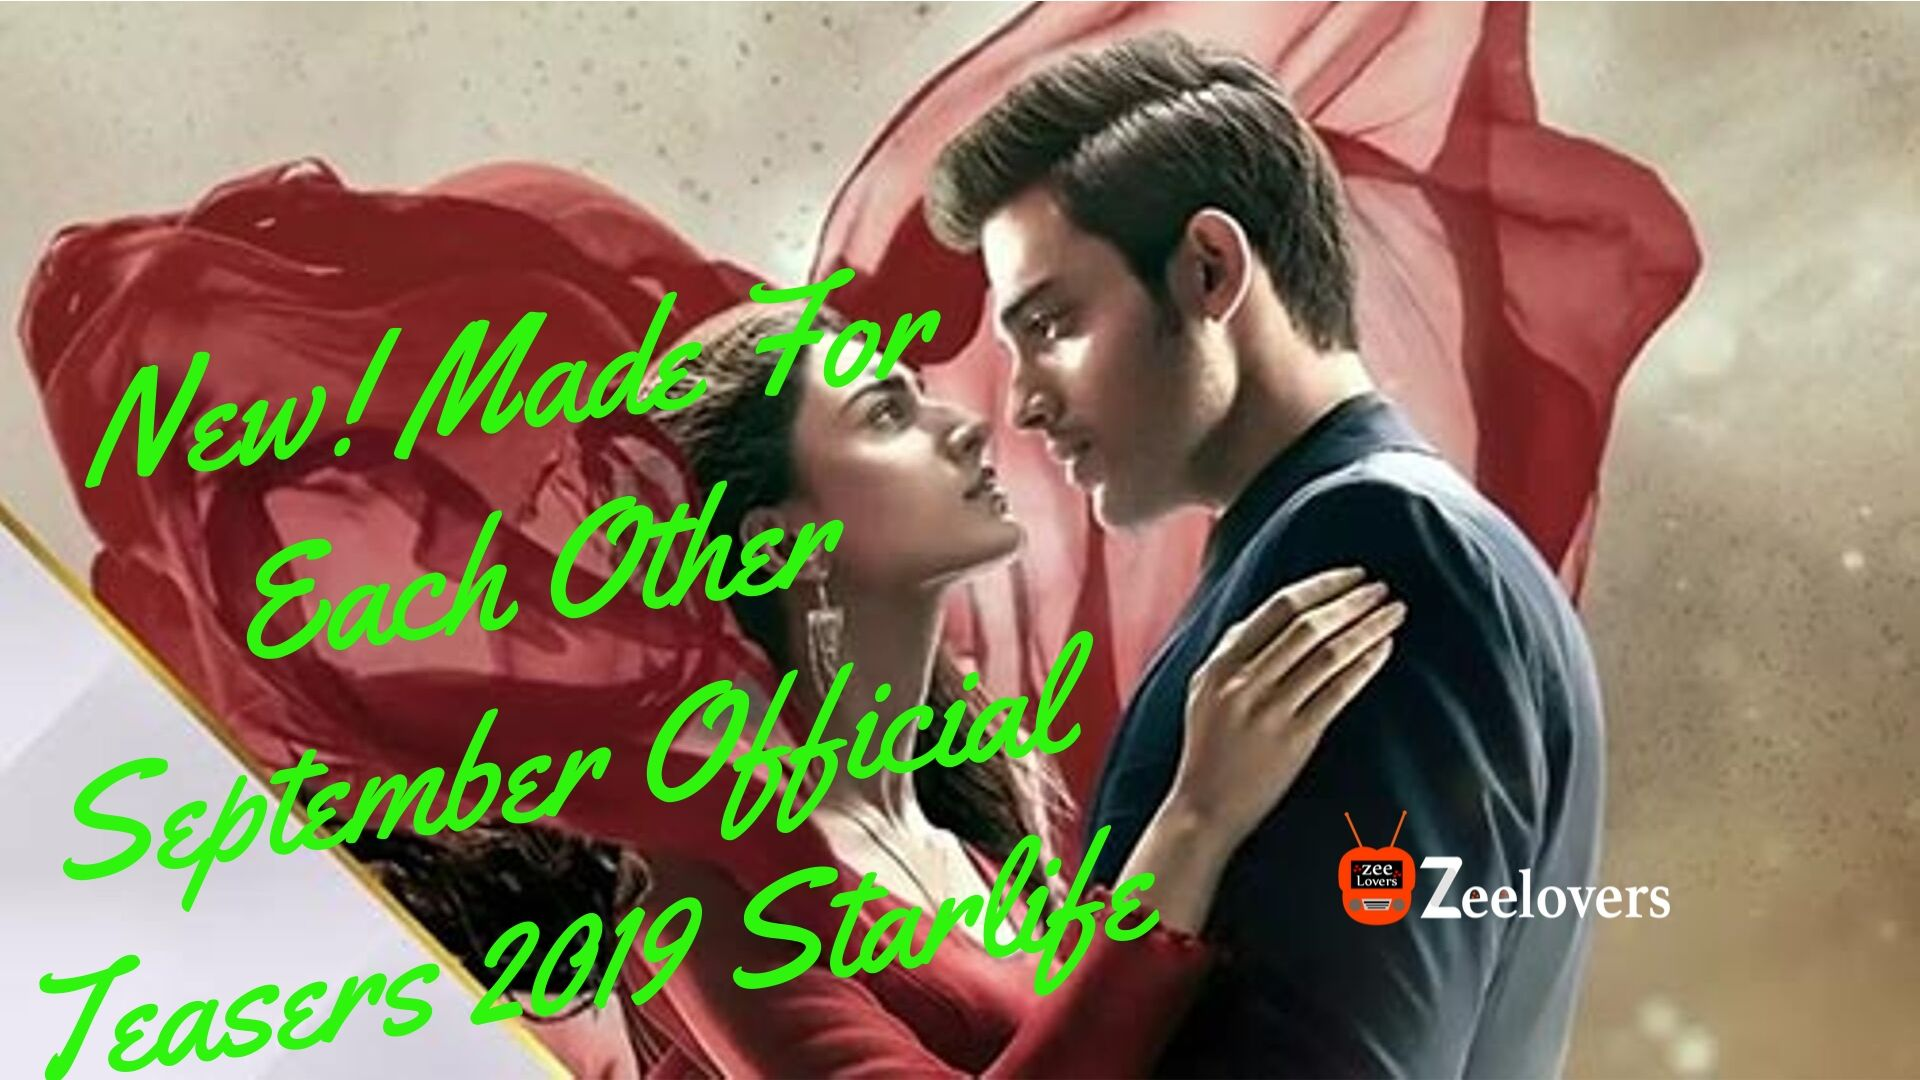 New! Made For Each Other September Official Teasers 2019 Starlife